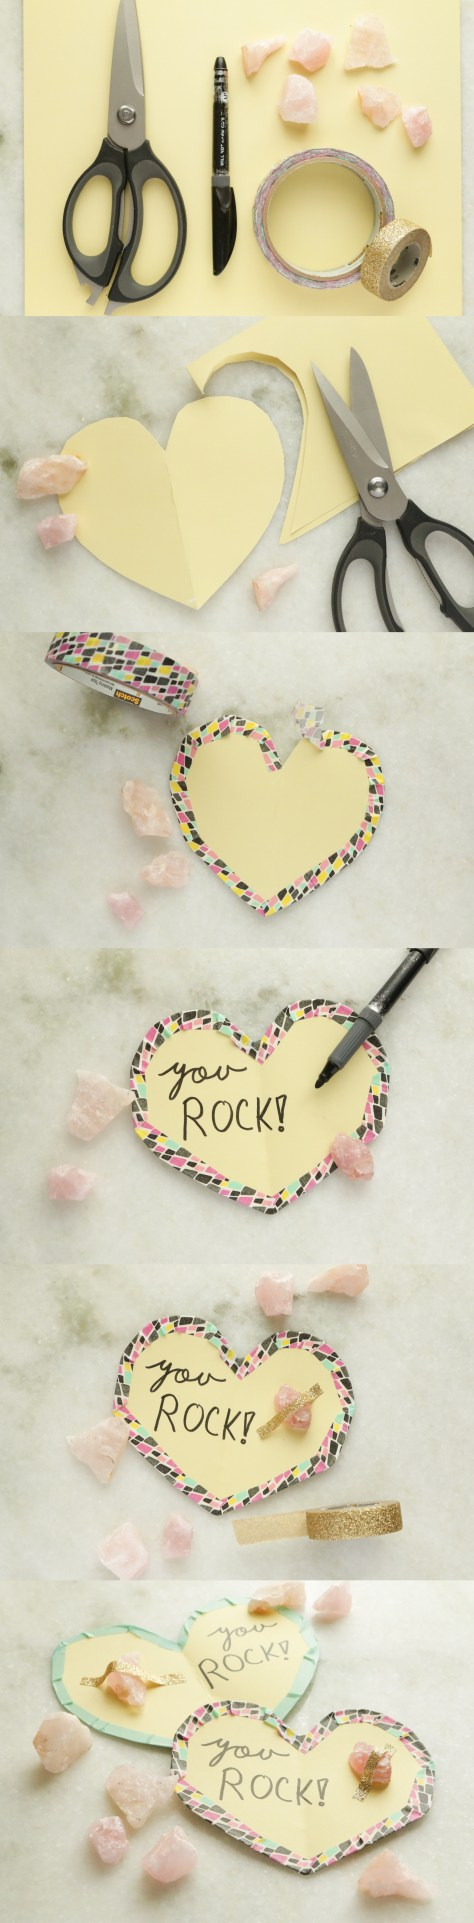 Calcite Rock Valentines Tutorial